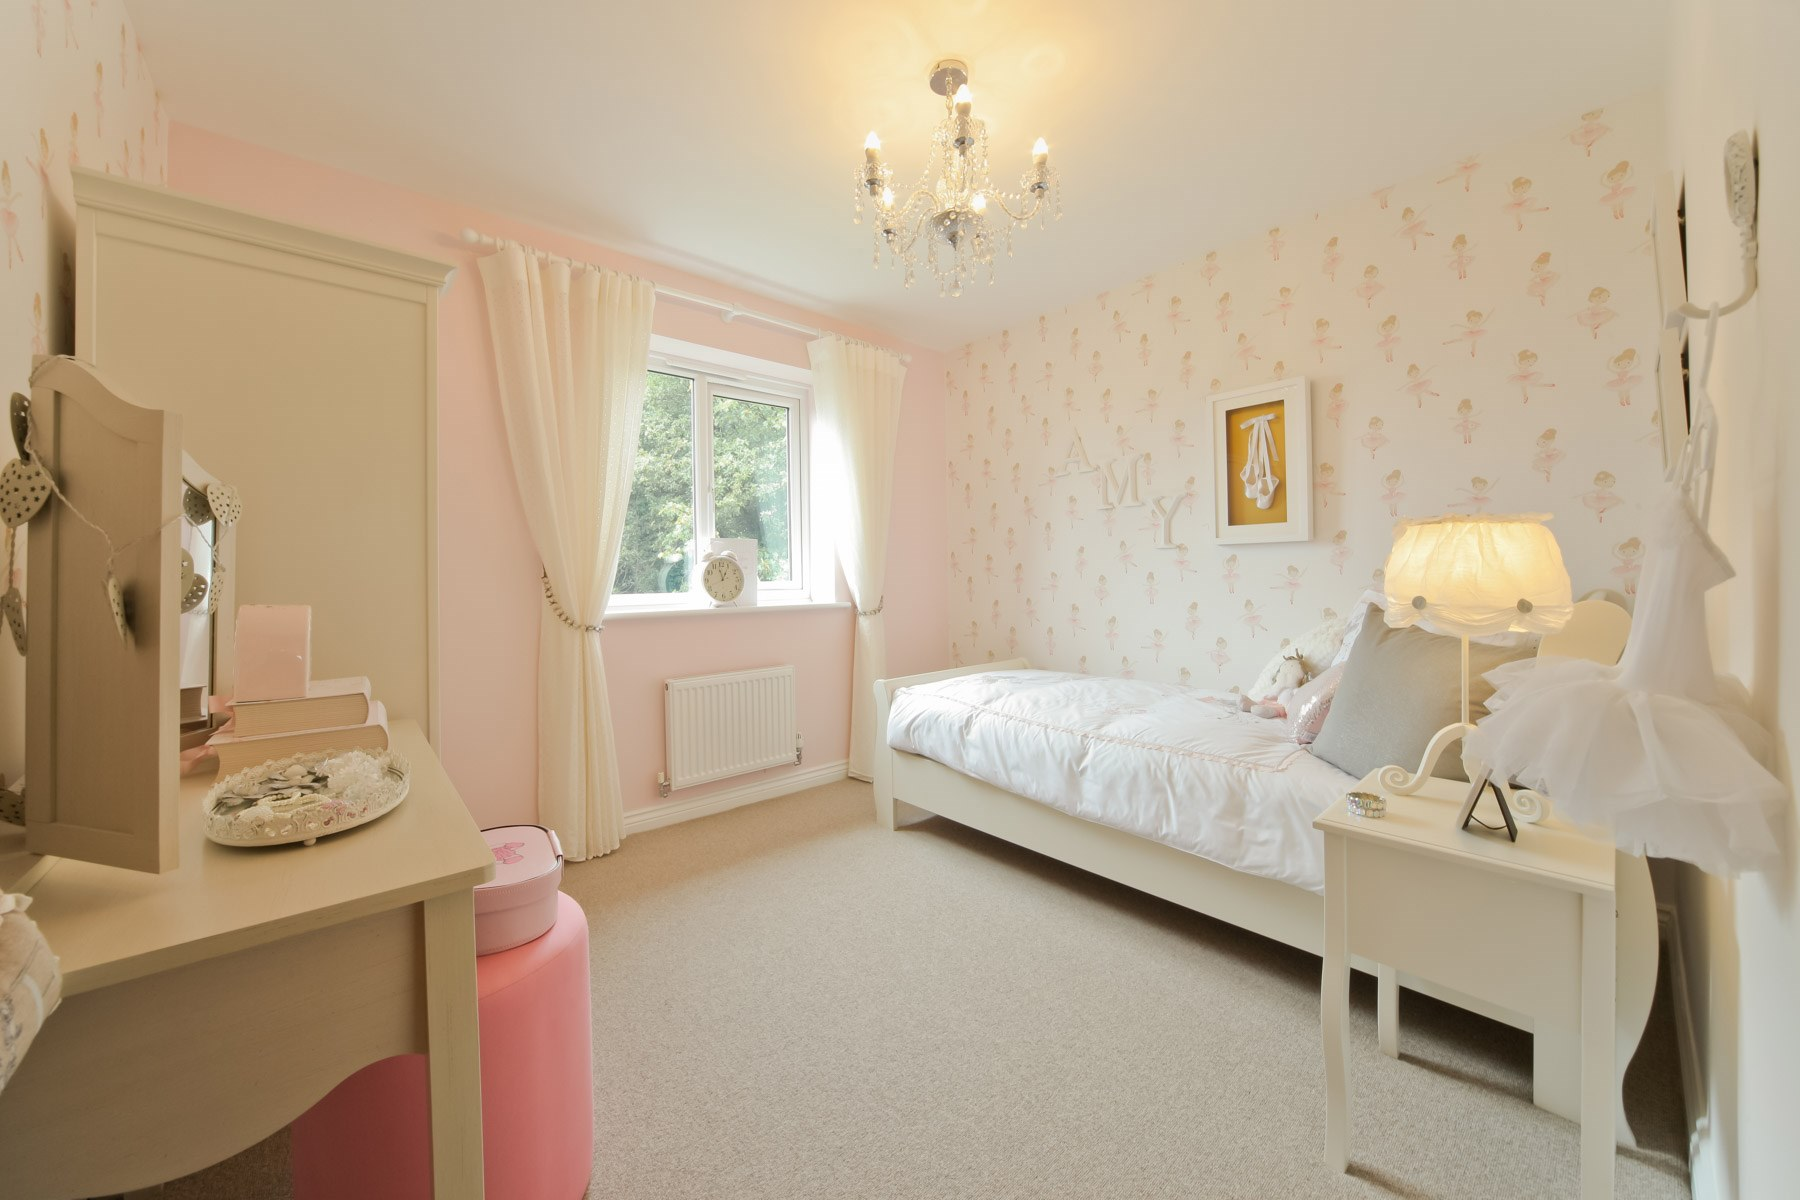 020_OM_Eynsham_Bedroom_4